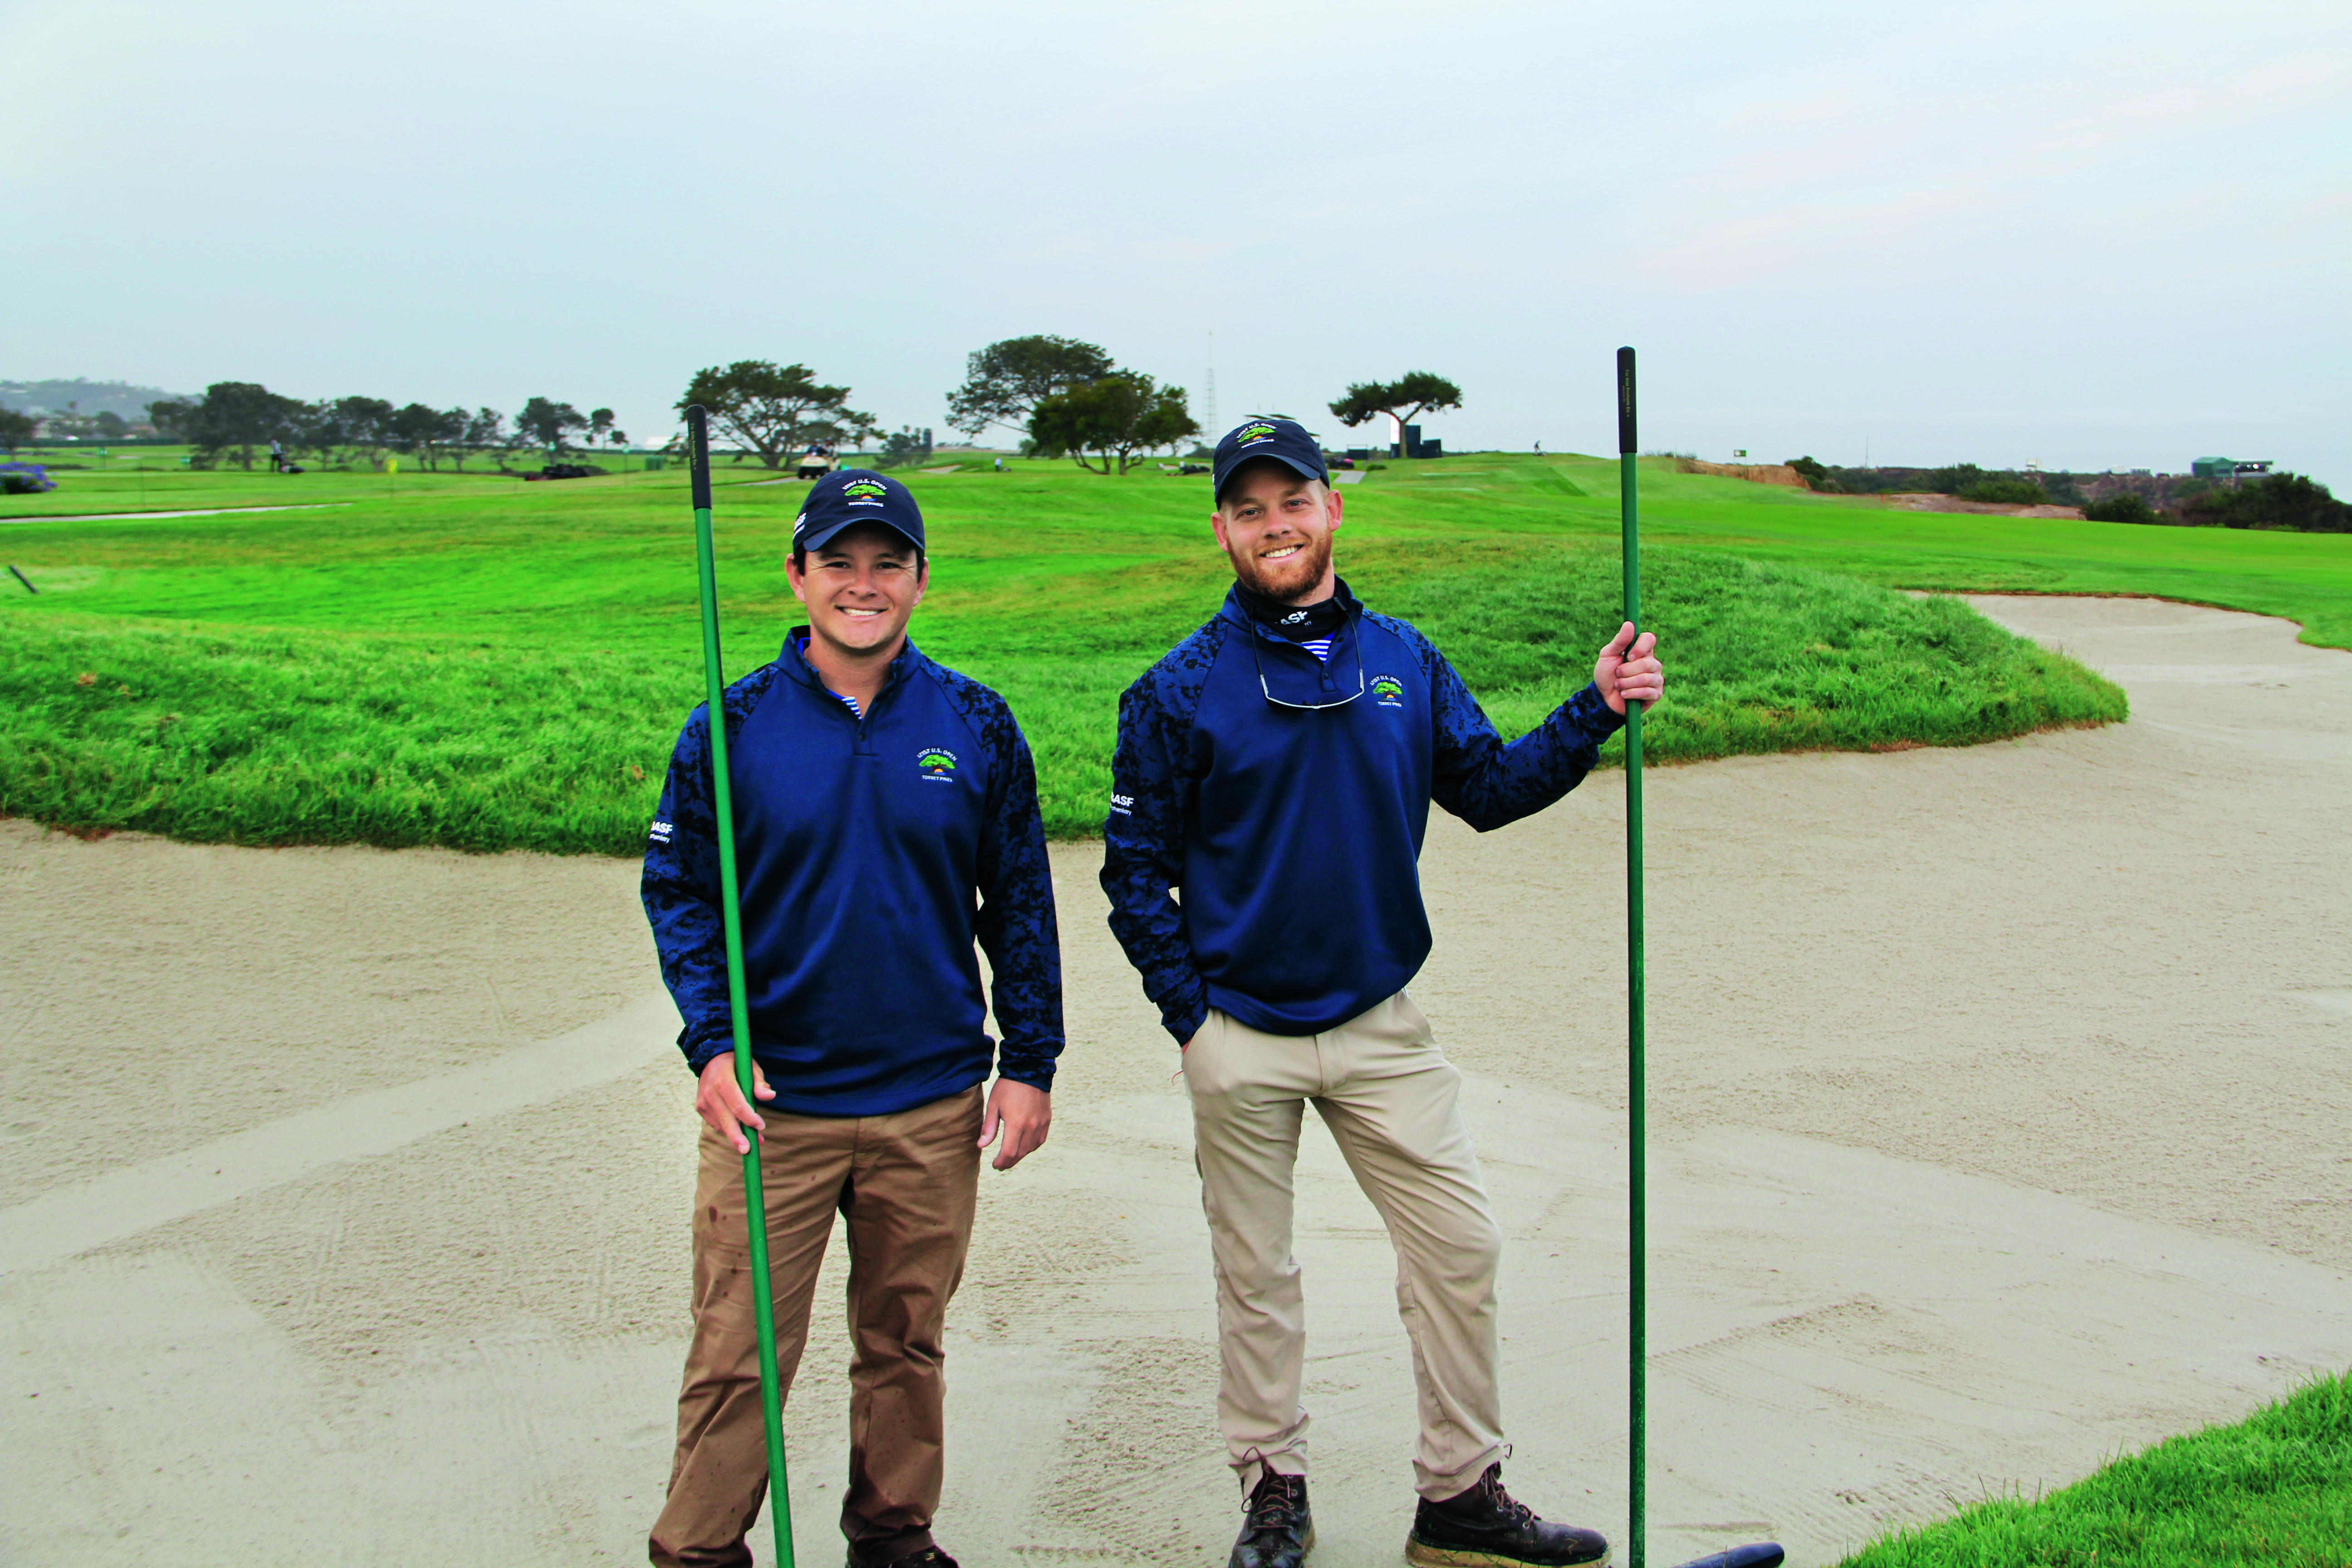 The early wake-up call is no big deal to Cole Yoshida (left), assistant superintendent at Rolling Hills CC, Rolling Hills Estates, Calif., alongside Cameron Gurtner, assistant superintendent at Meridian Hills CC in Indianapolis. (Photo: Golfdom Staff)